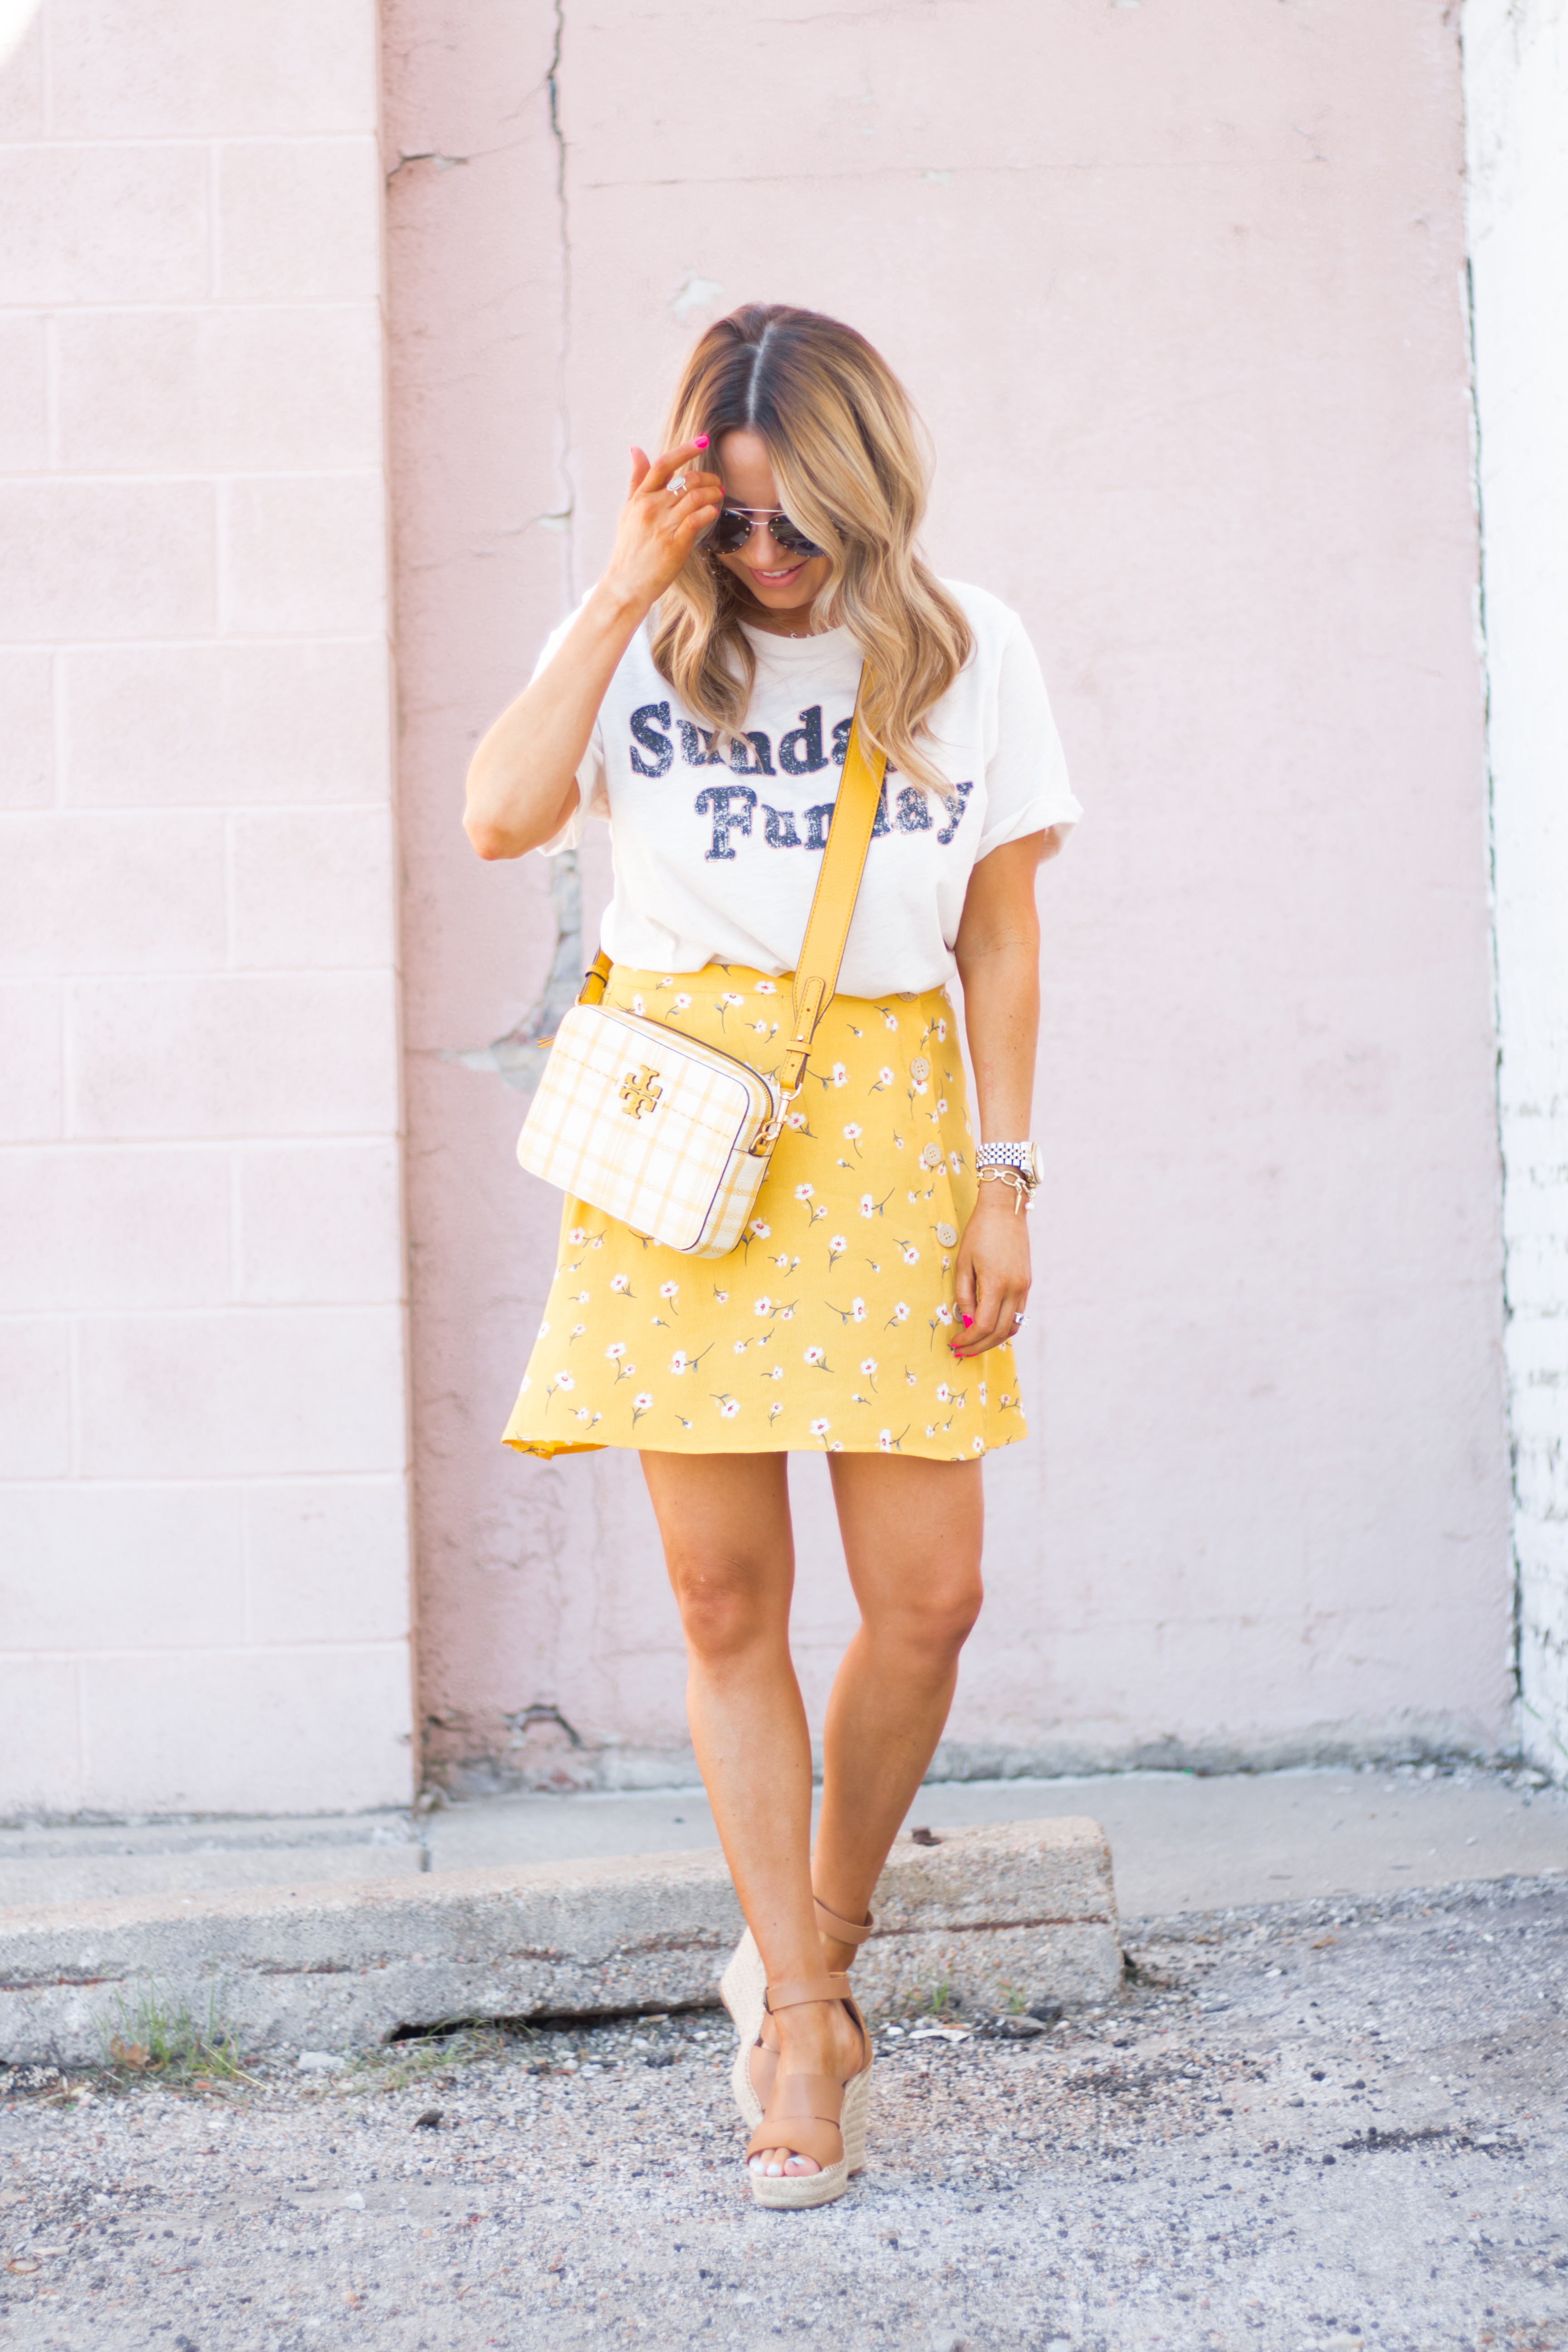 Sunday Funday-Graphic Tee-Floral Skirt-Mini Skirt-Spring Fashion-Spring Style-Tory Burch Purse-Quay Sunglasses-Tan Wedges-Espadrilles-Yellow-Colorful Style-Sabby Style-Women's Fashion-Omaha Blog-Omaha Blogger-3